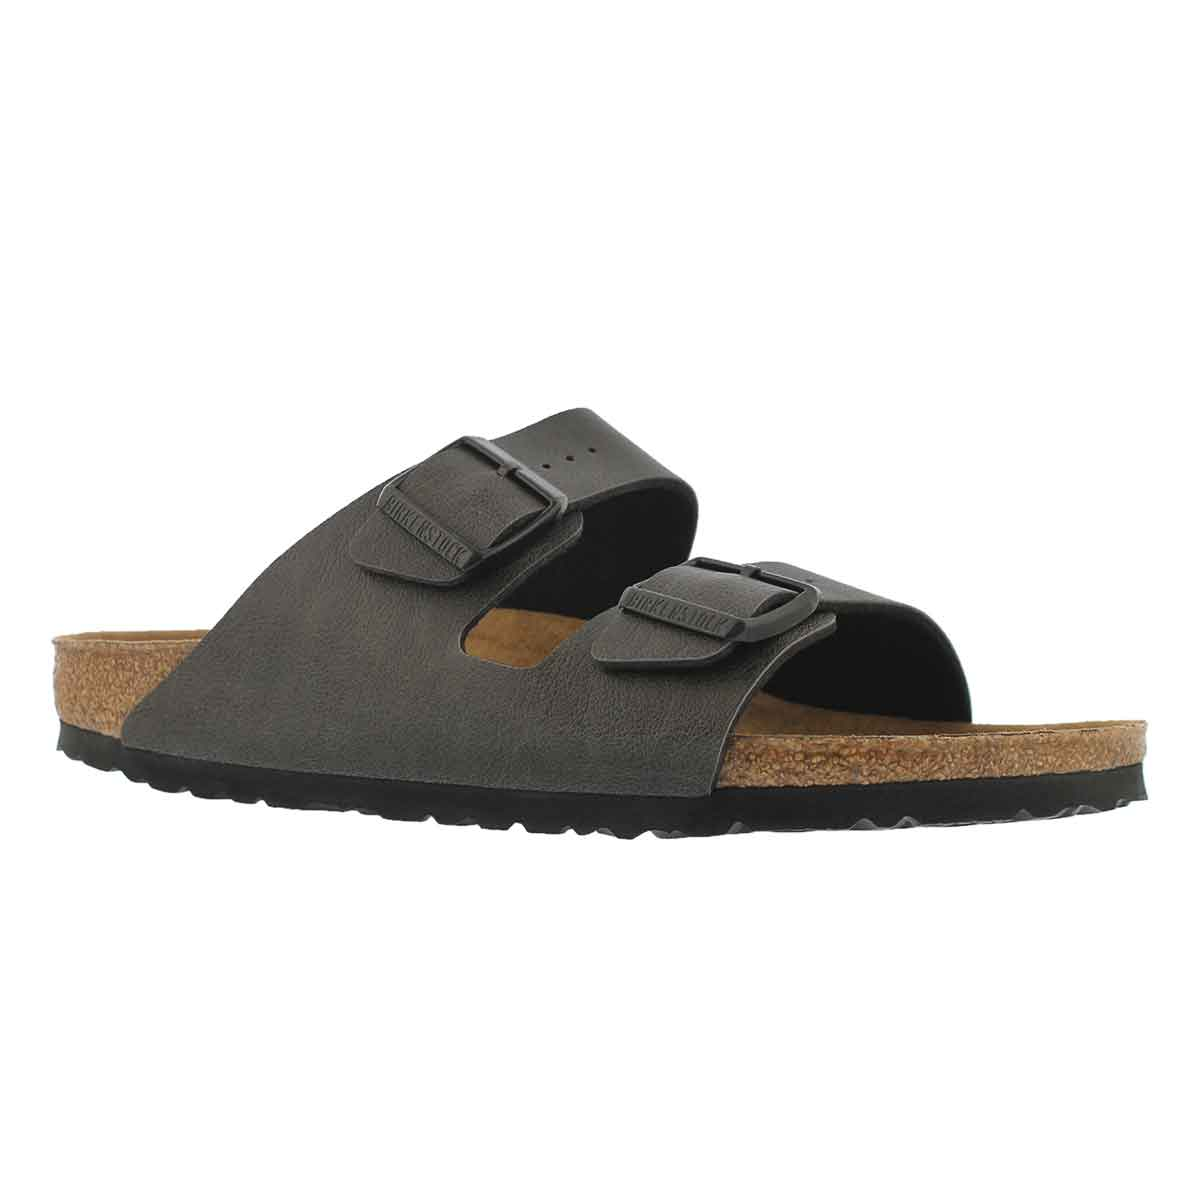 Men's ARIZONA Veg pullup anthrcte sandals - Narrow